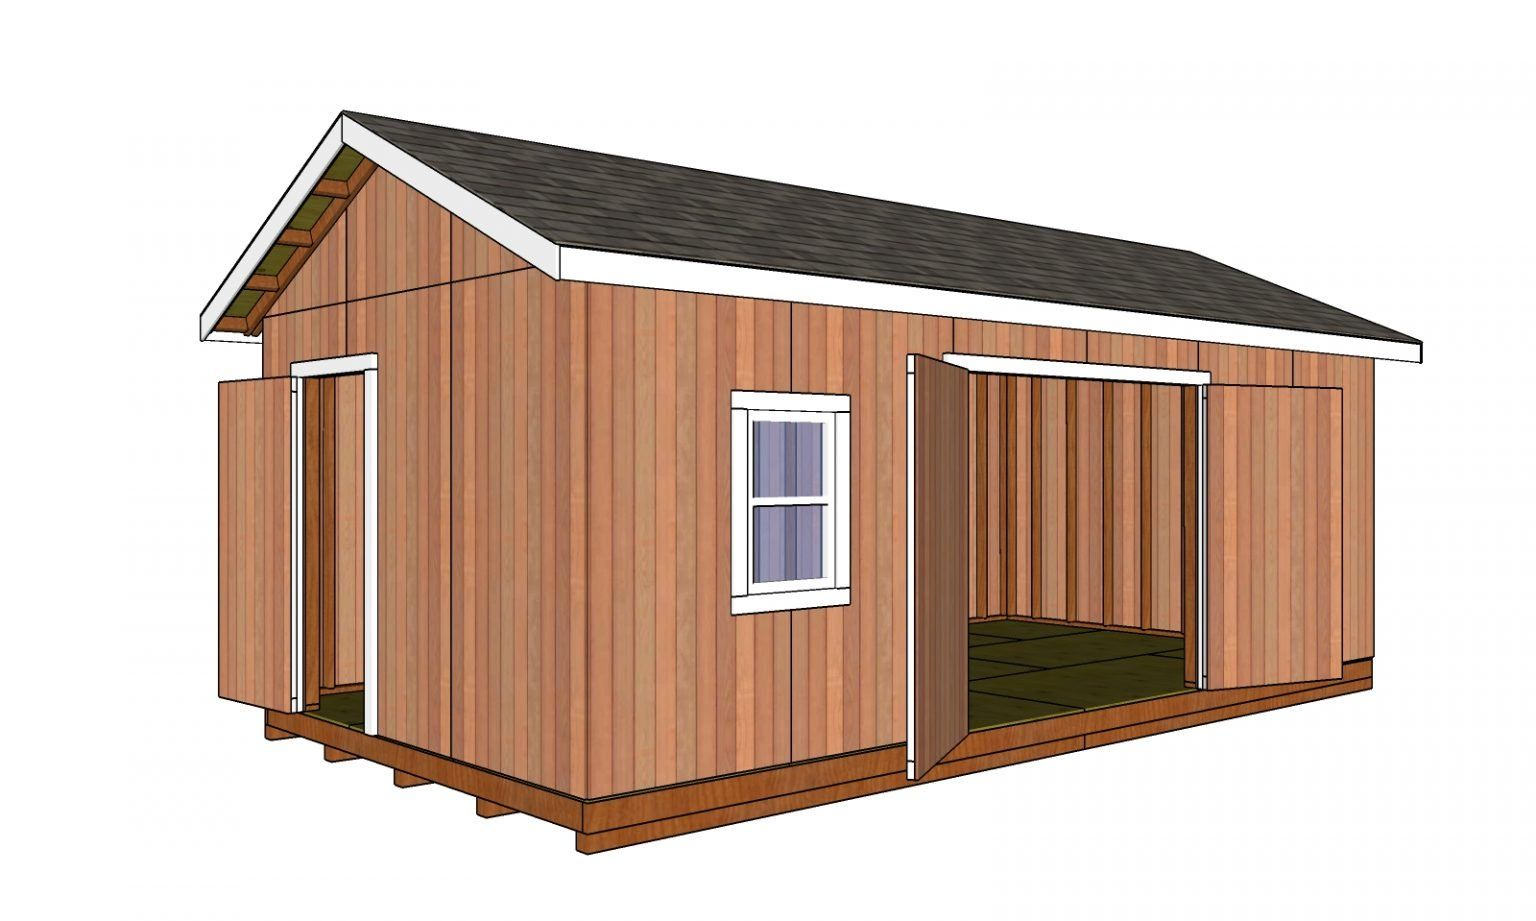 12x24 Shed Plans Free Diy Plans Howtospecialist How To Build Step By Step Diy Plans In 2020 Shed Plans Shed 12x24 Shed